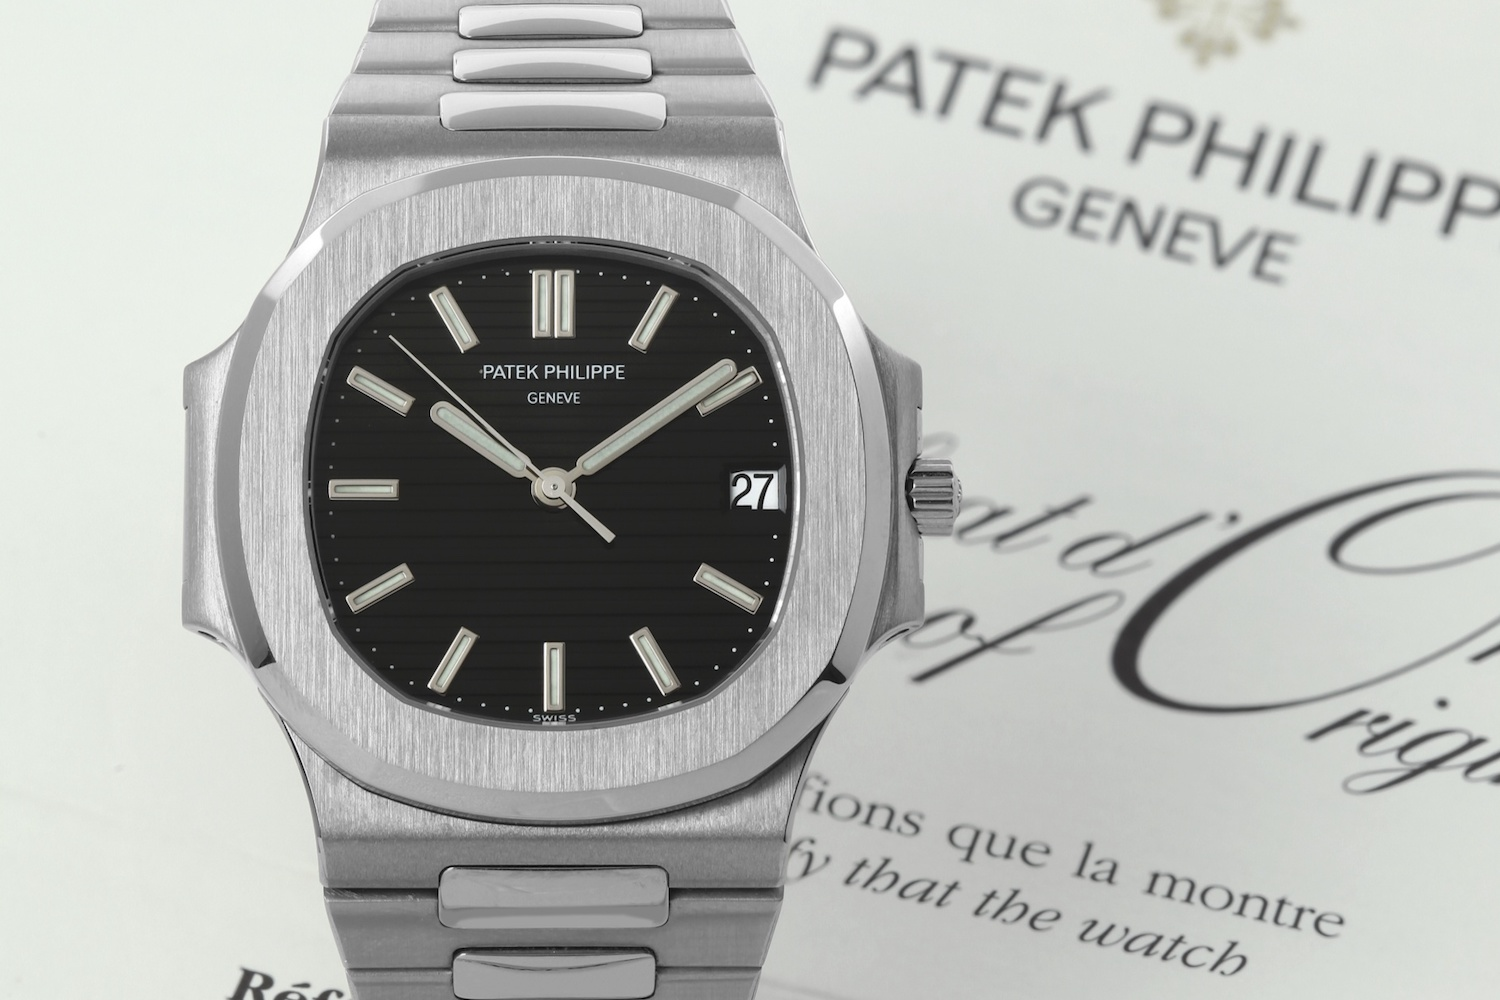 Patek Philippe Nautilus History part 2 - evolutions collection